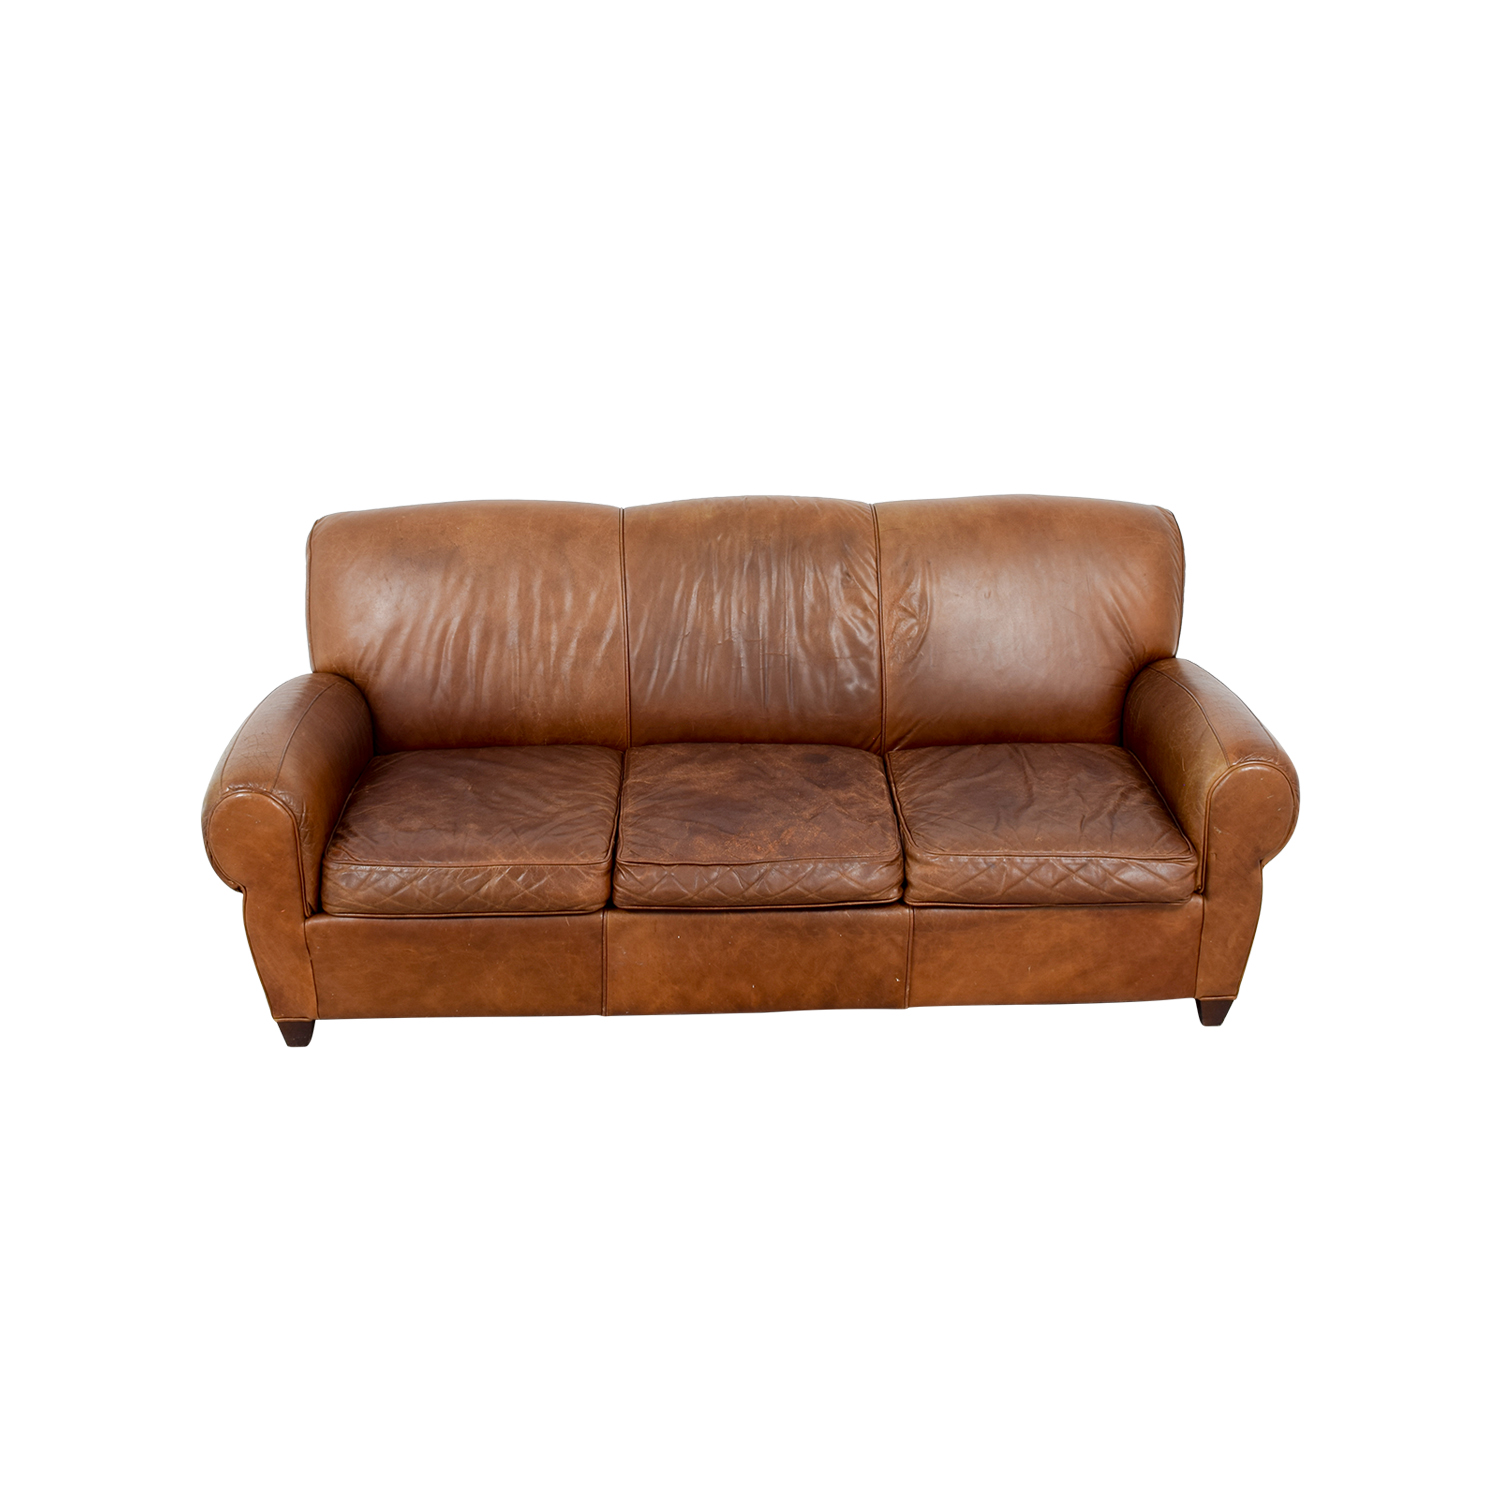 Used Leather Sofa Used Leather Chesterfield Sofa Bed Chesterfield Leather